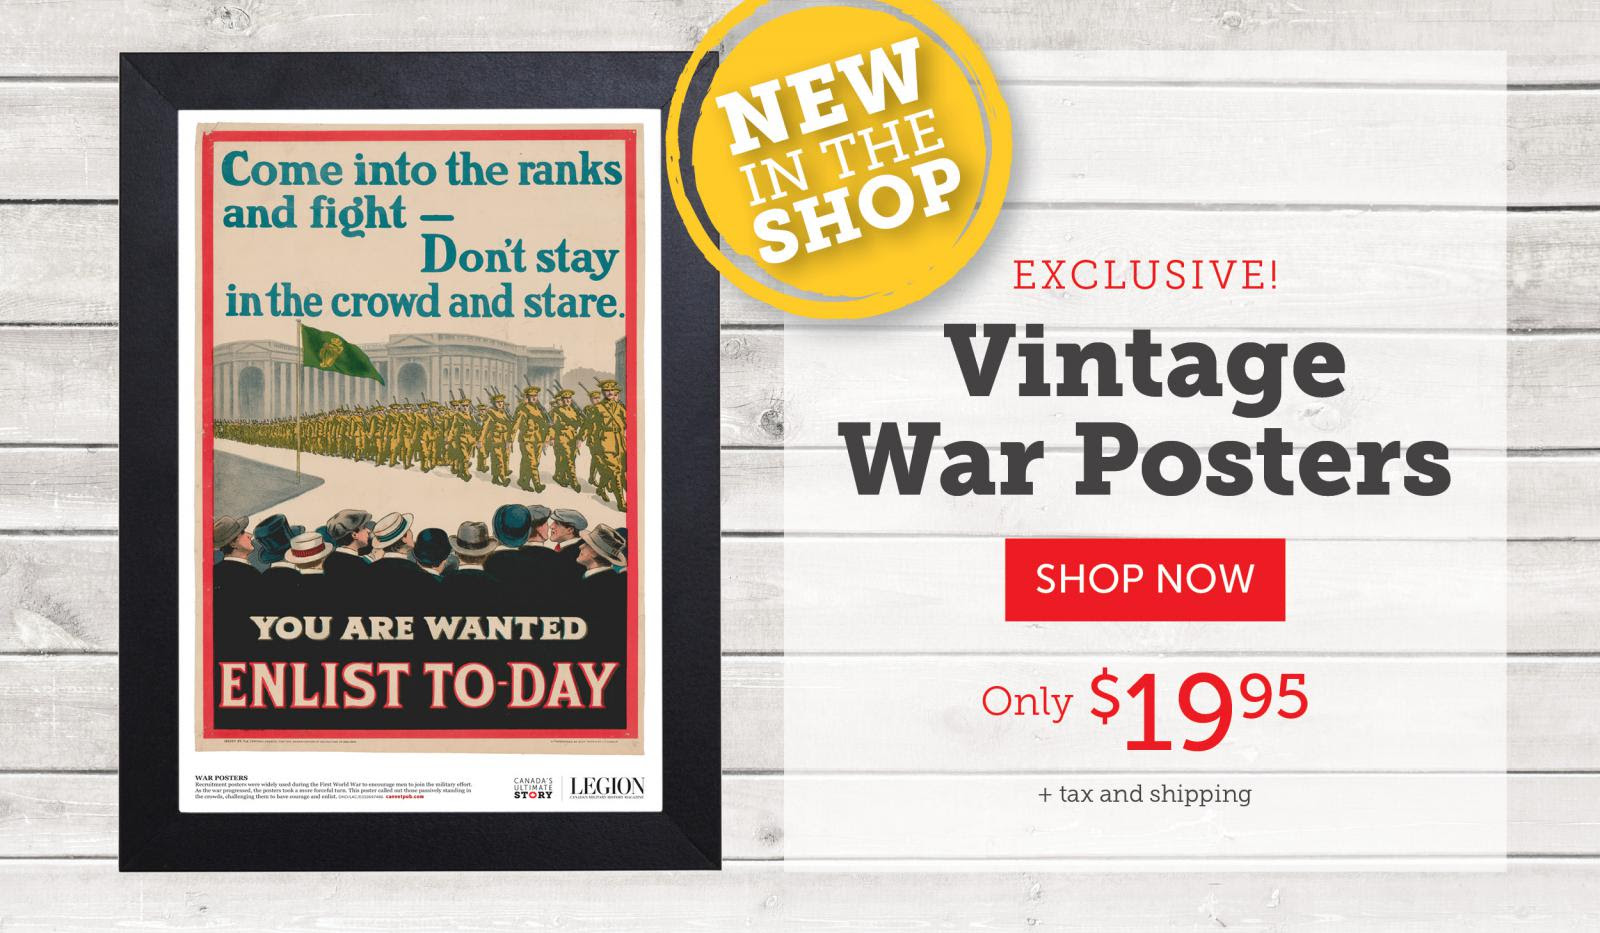 Vintage War Posters now available!